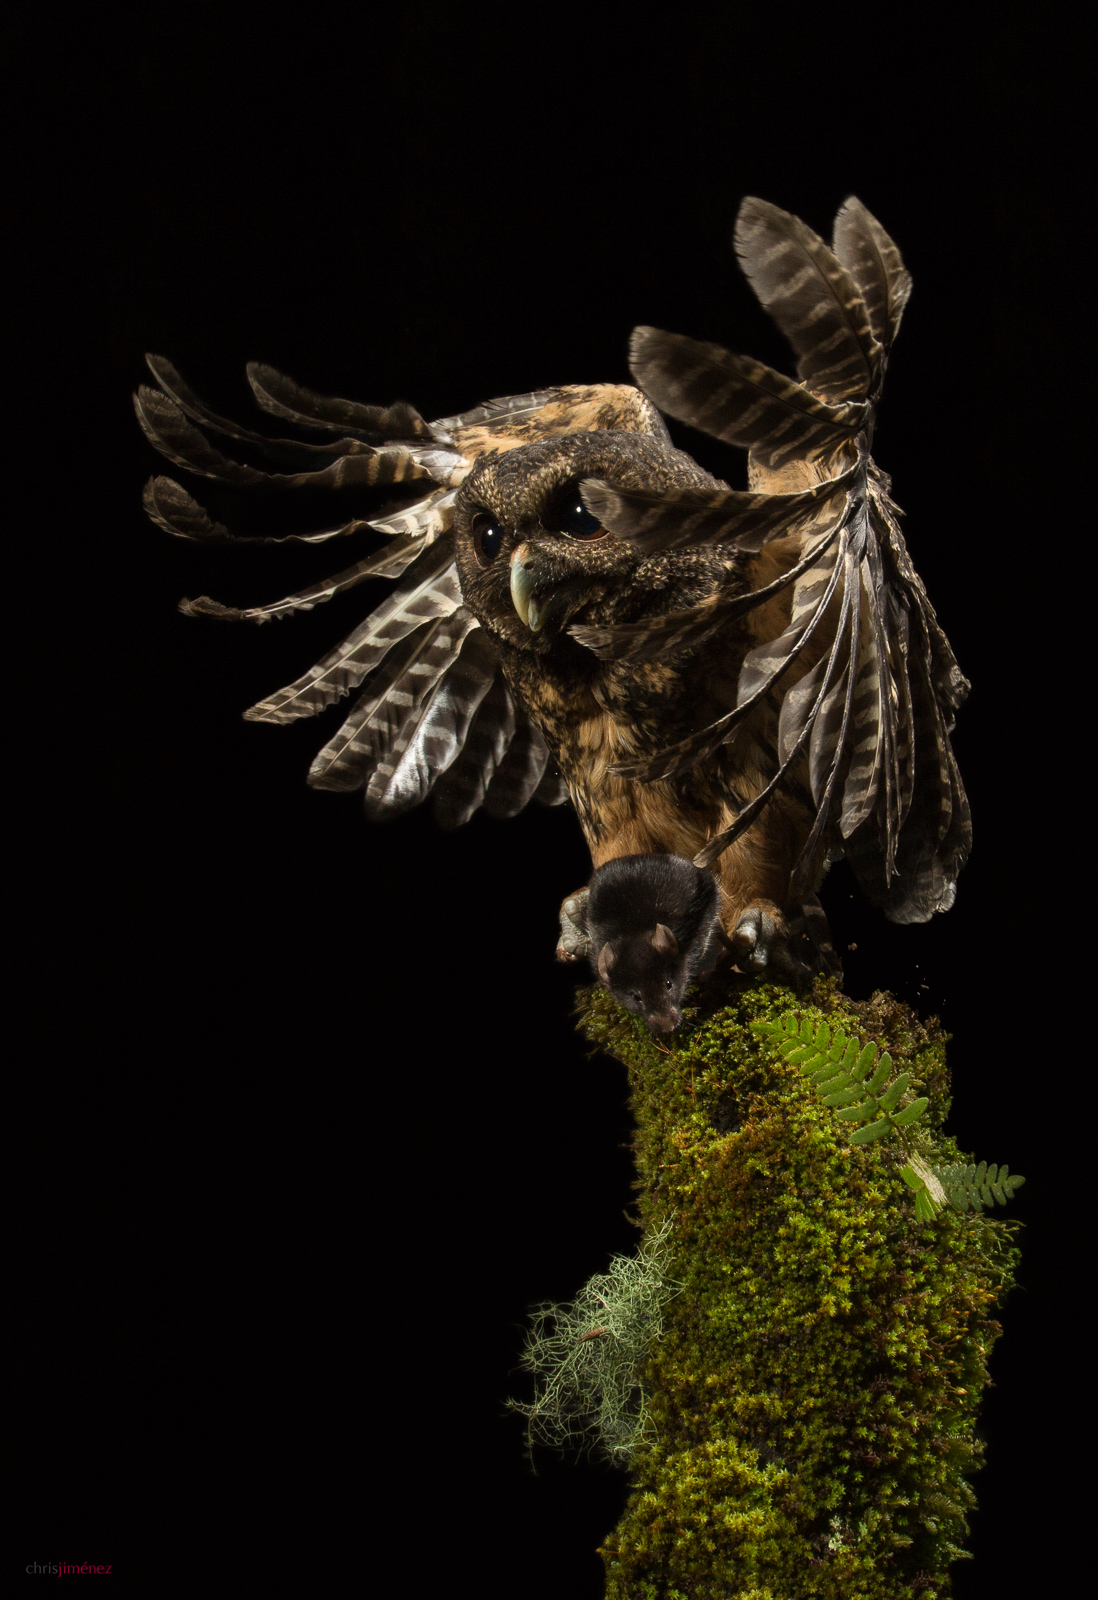 Mottled Owl (Ciccaba virgata) hunting at night in the highlands of Costa Rica.